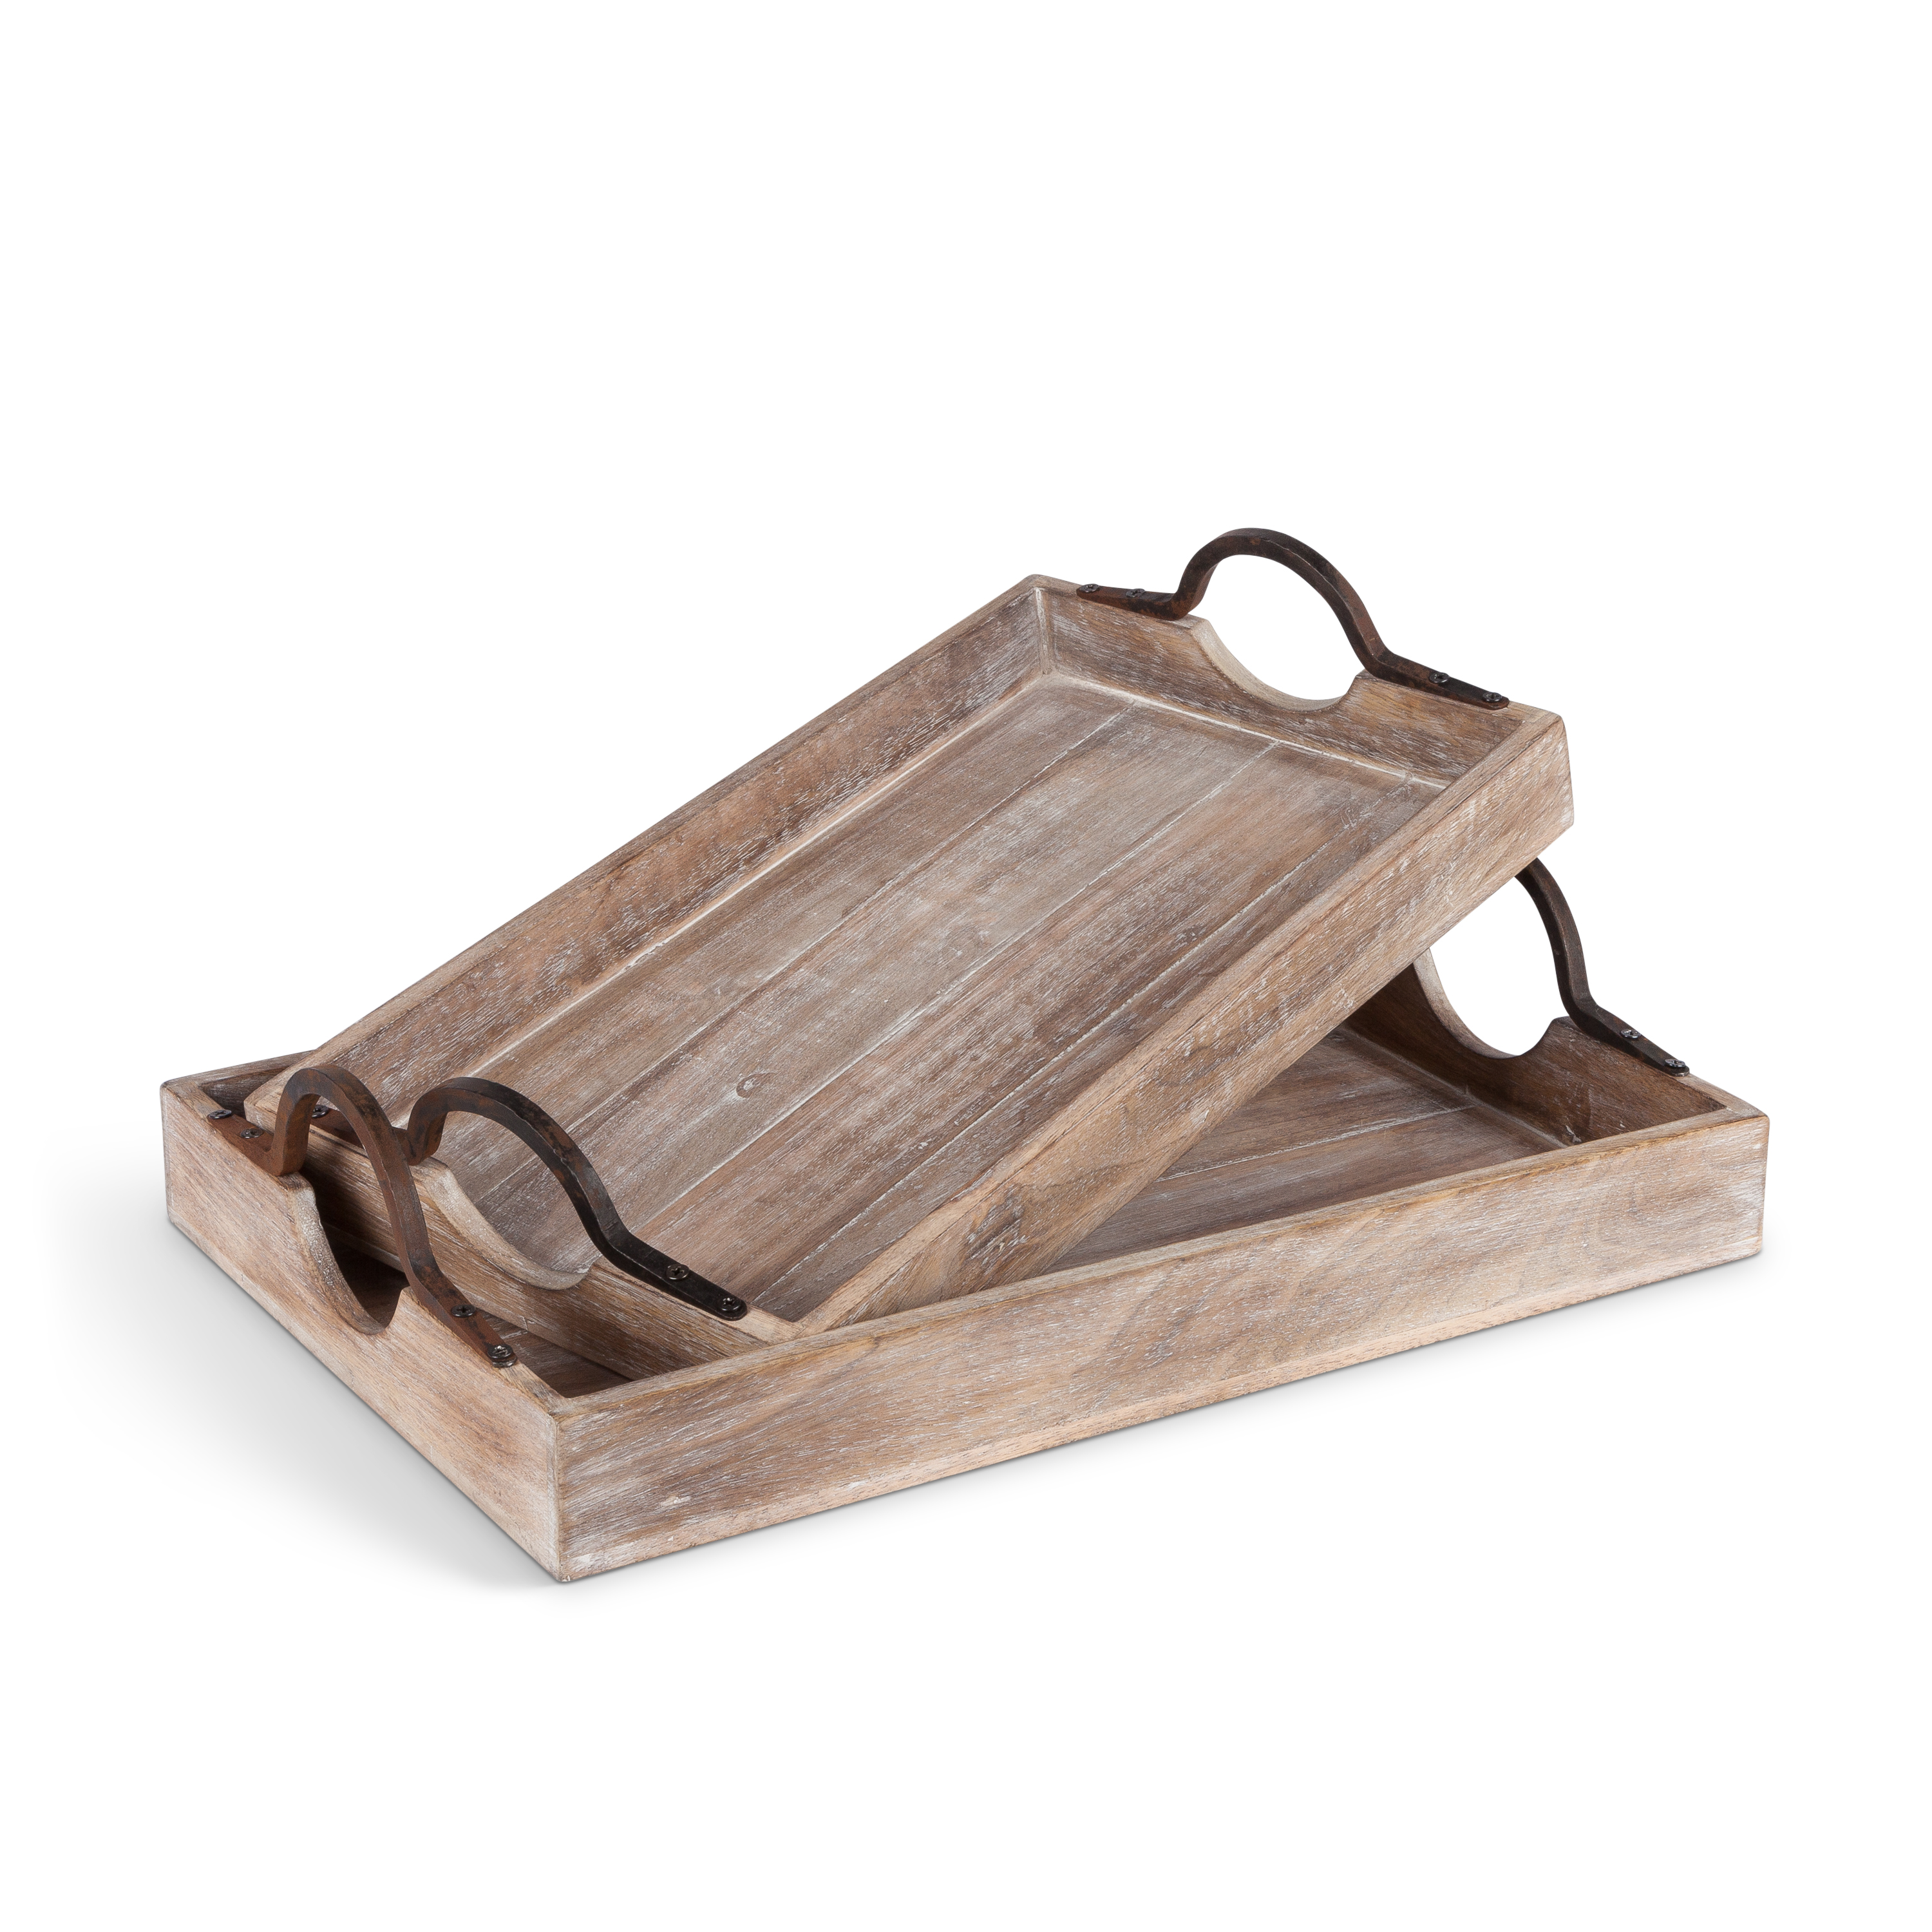 Artisan Serving Trays Constructed Of Mango Wood With Metal